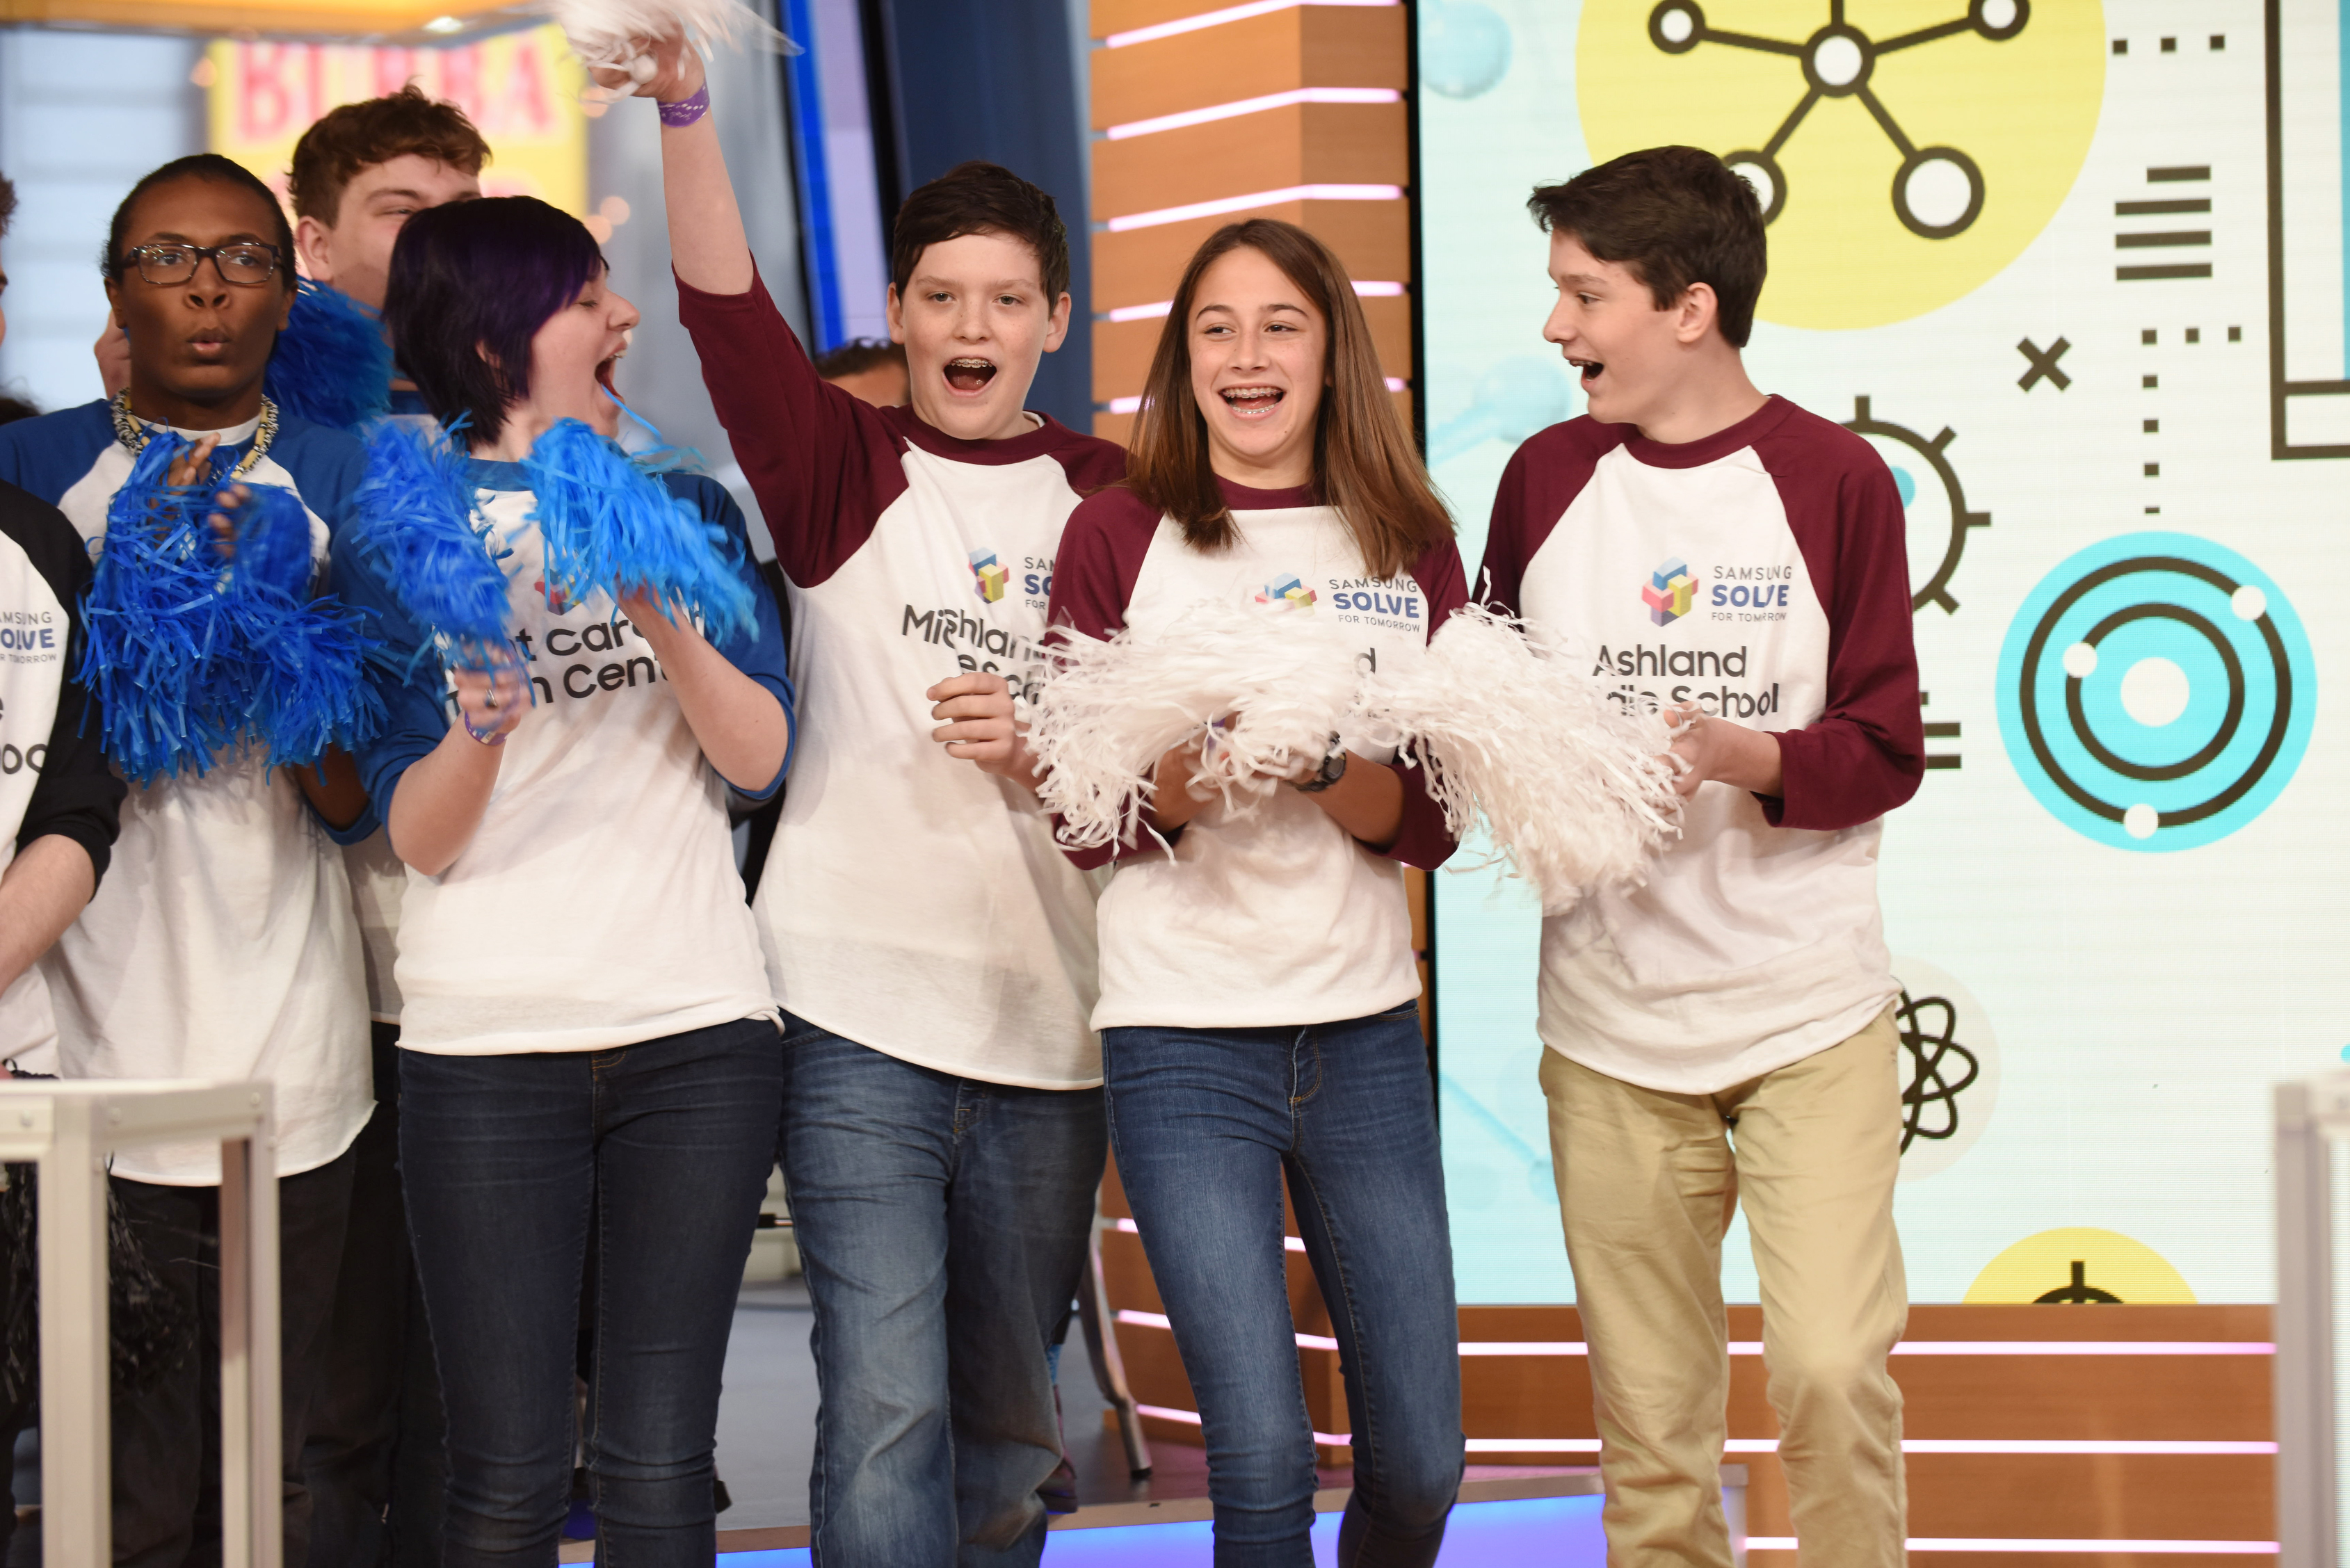 A team from Ashland Middle School in Ashland, Ky. was recognized live on Good Morning America as one of the grand prize winners of the Samsung Solve for Tomorrow Contest